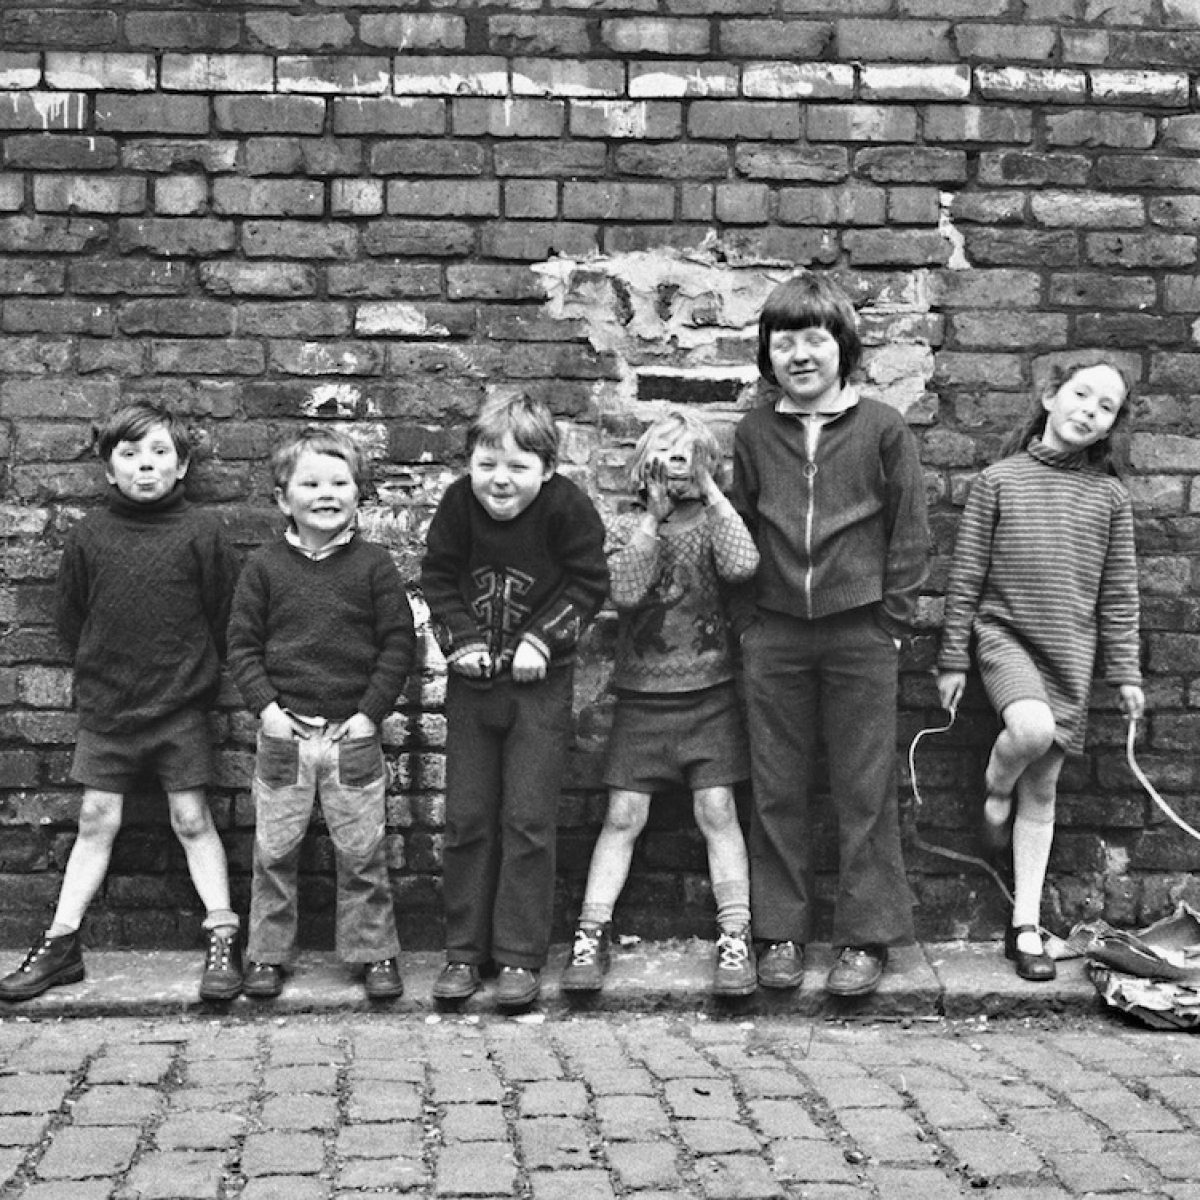 The Kids of Beeton Grove, Manchester, 1970s. Photo © Chris Hunt.